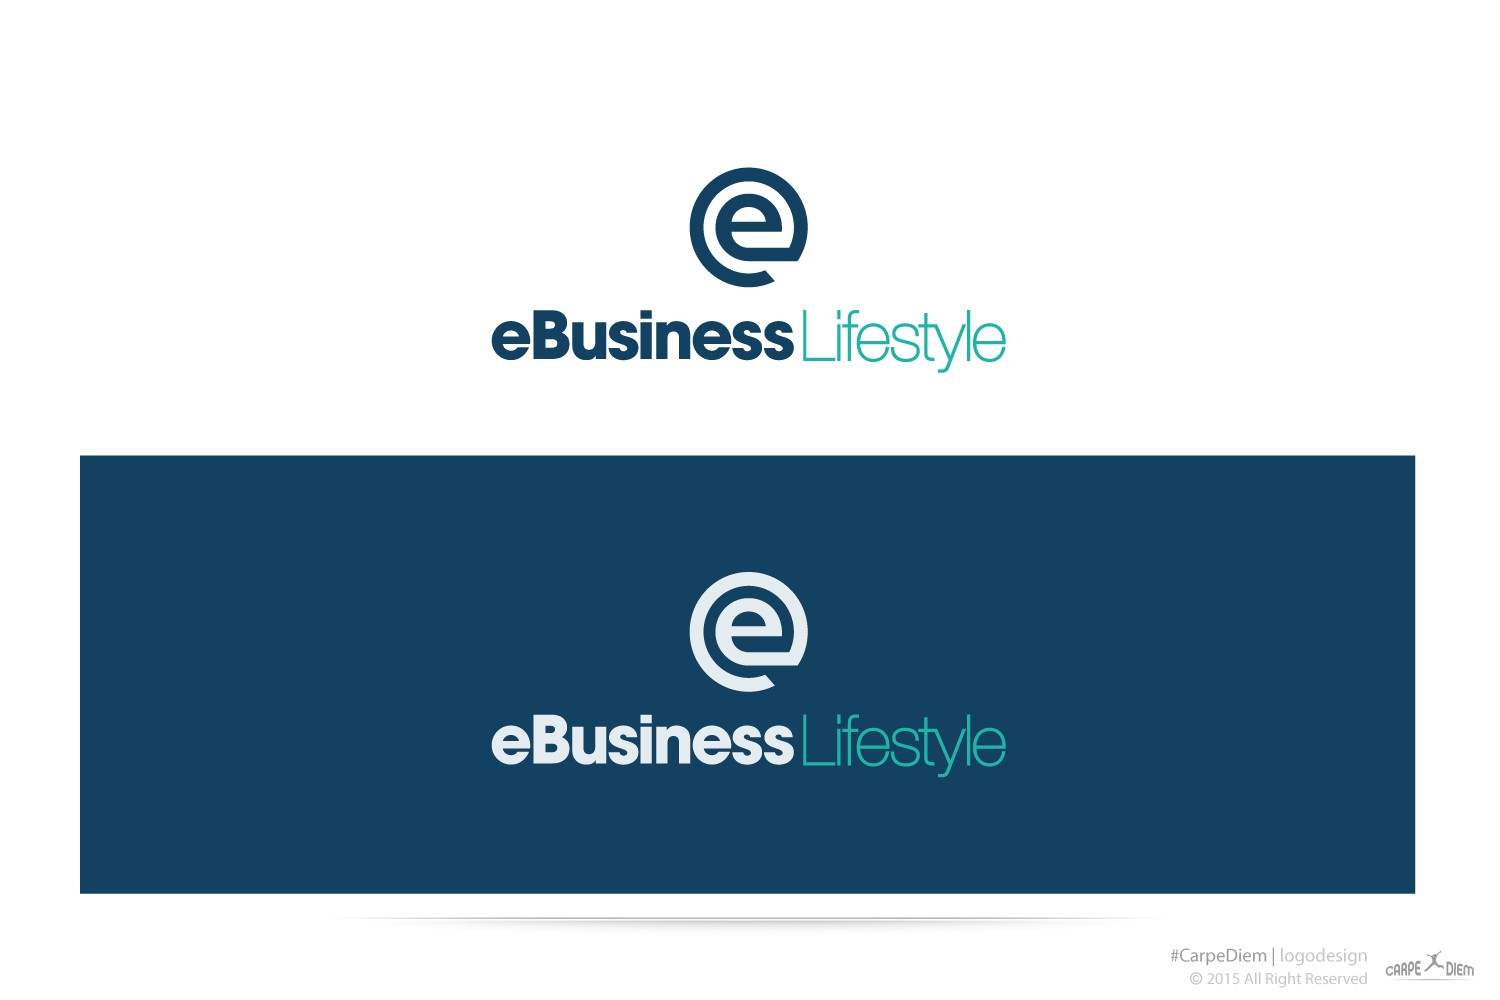 Design a simple, fun yet professional logo for our new blog - eBusiness Lifestyle